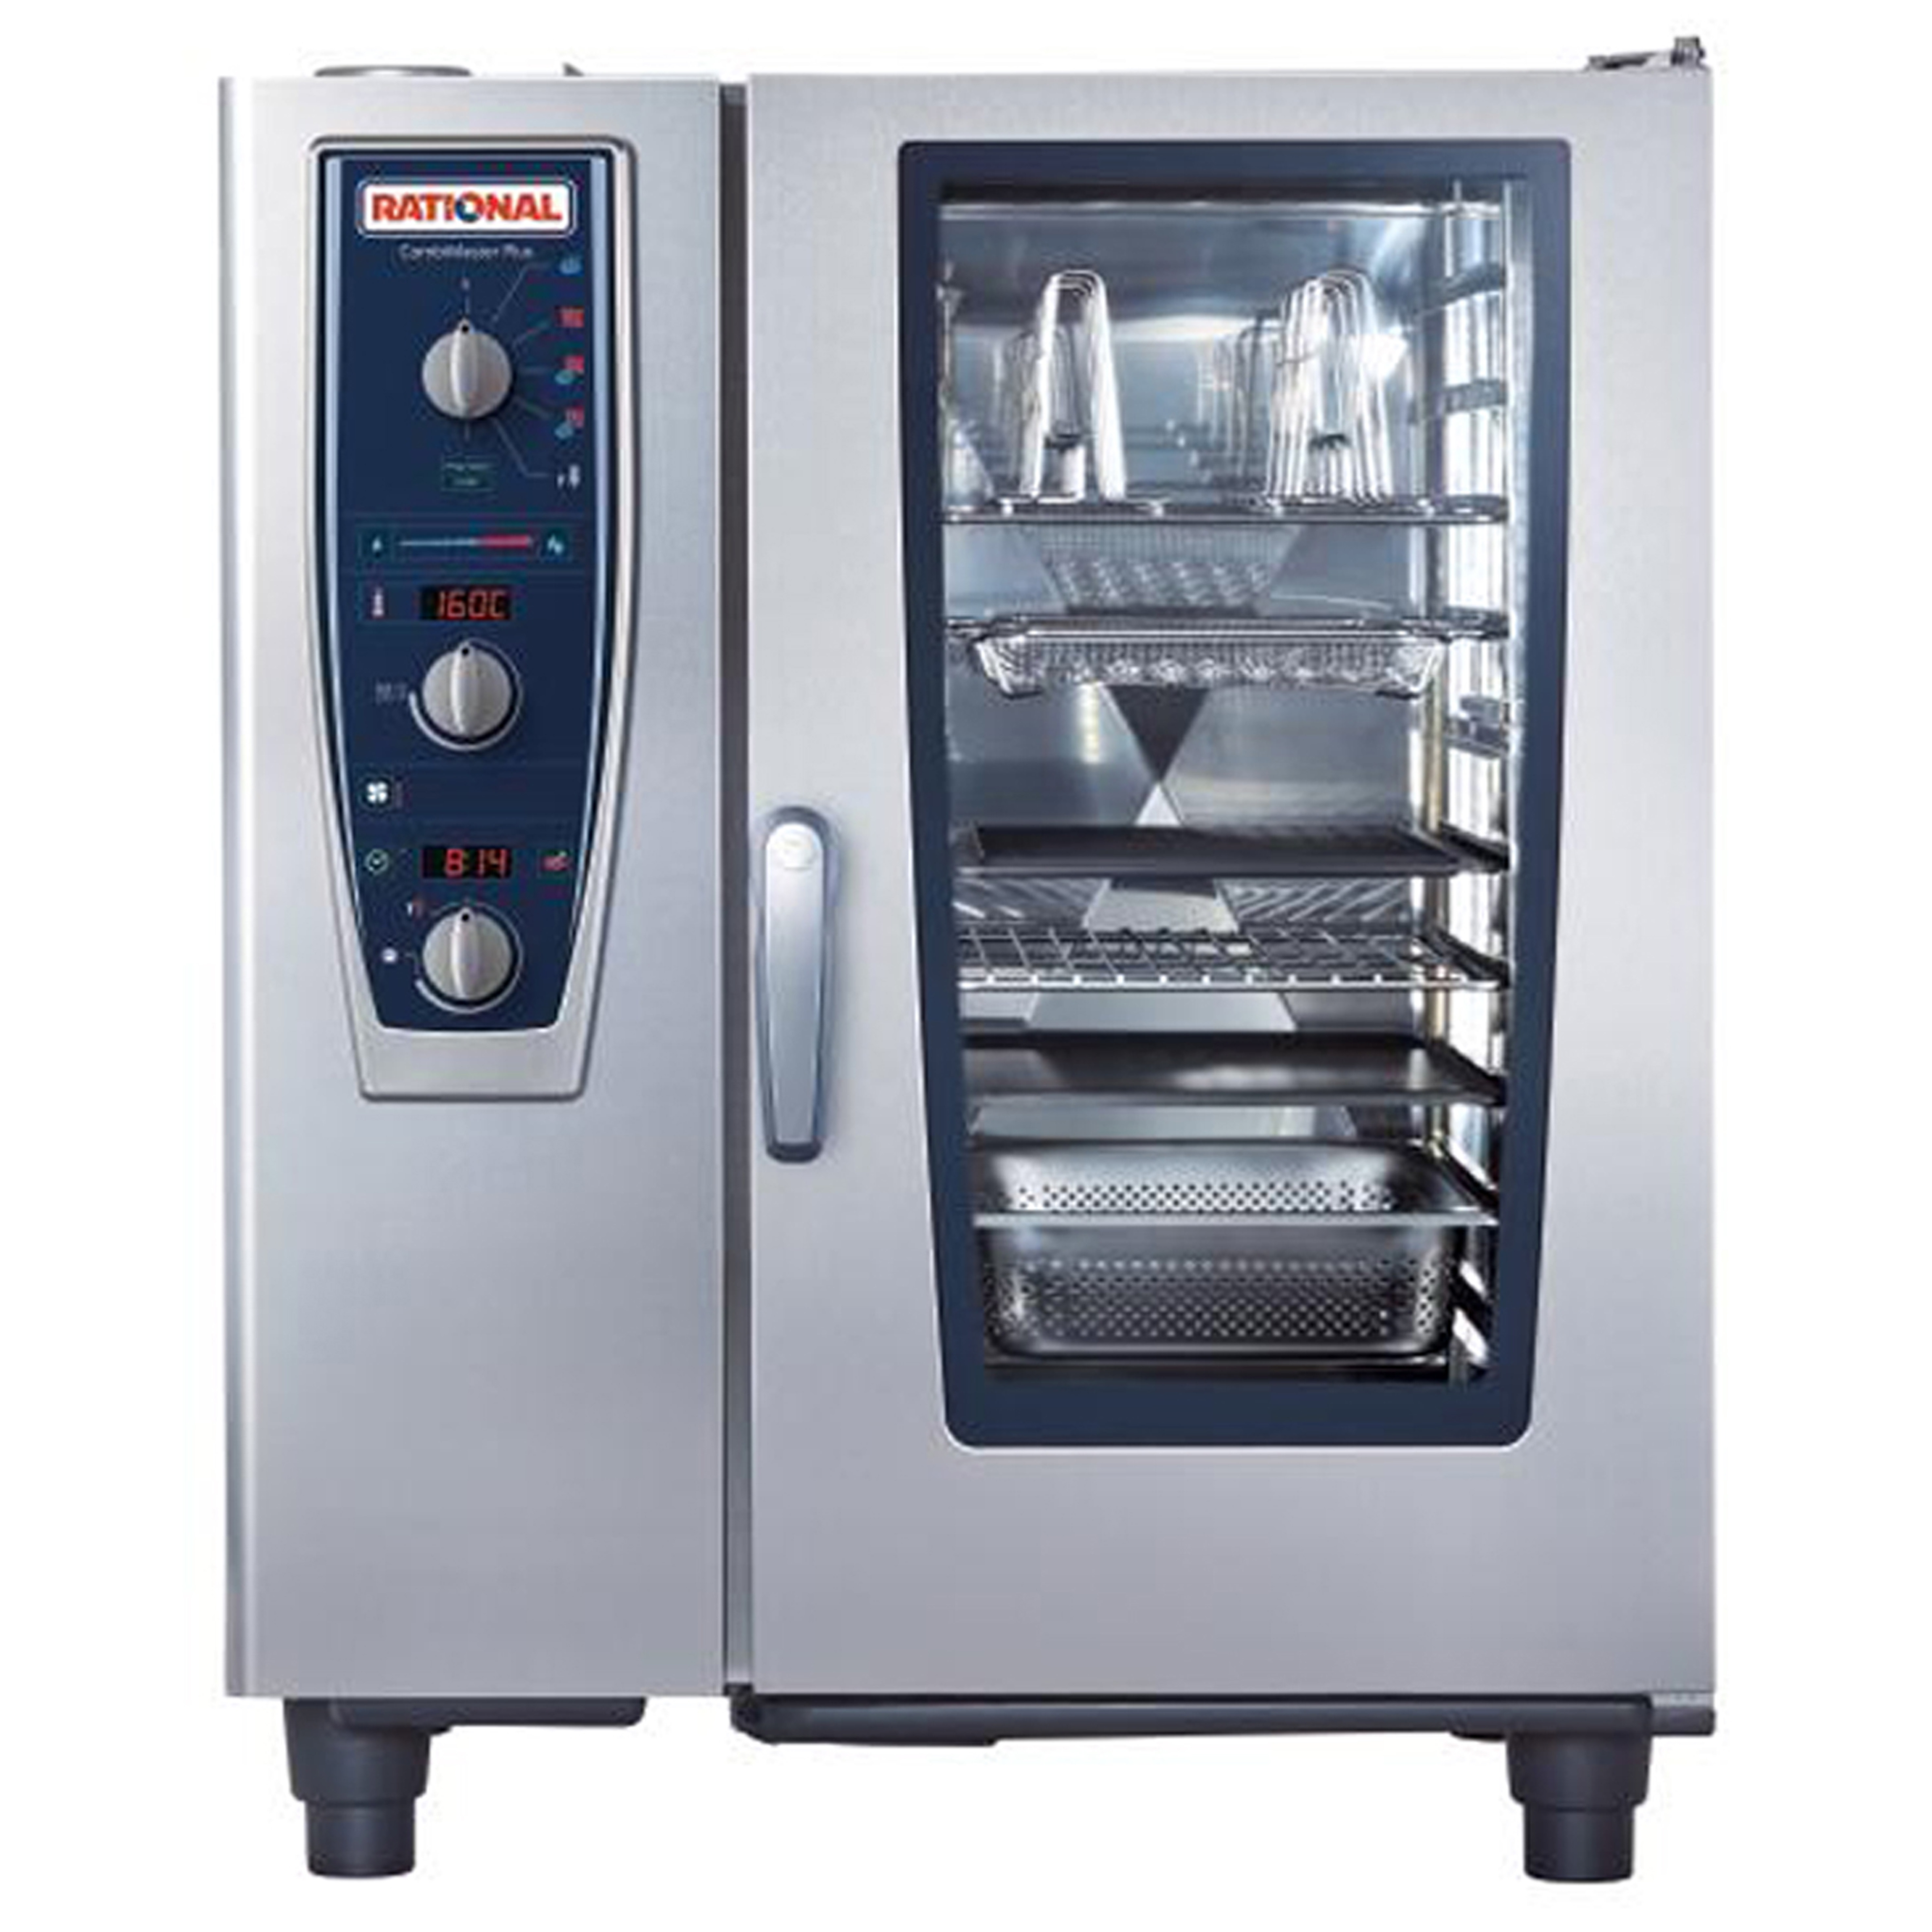 RATIONAL B119206.27D202 combi oven, gas